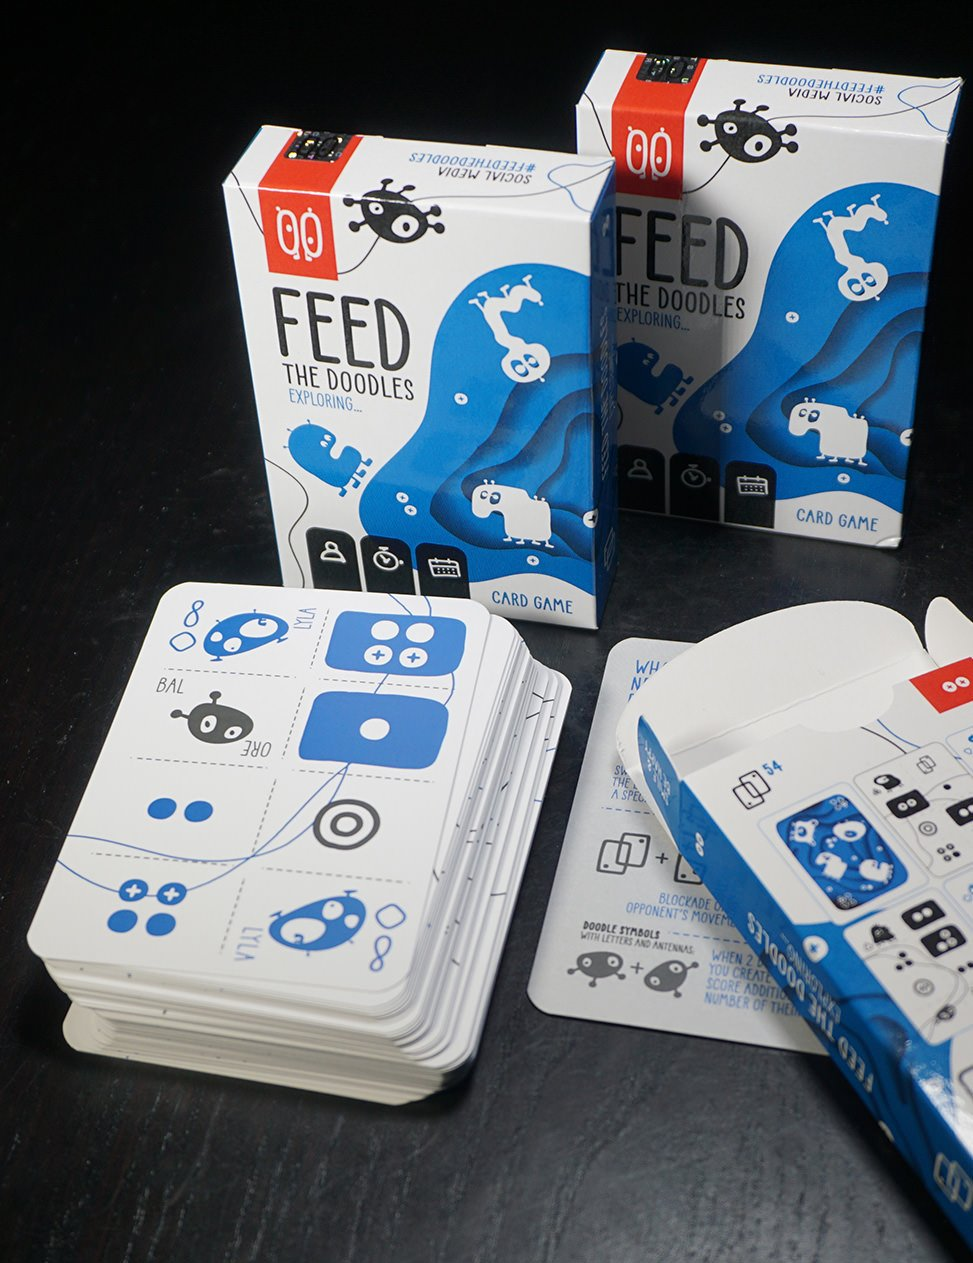 info-box-1-card-game-feed-the-doodle2-2020